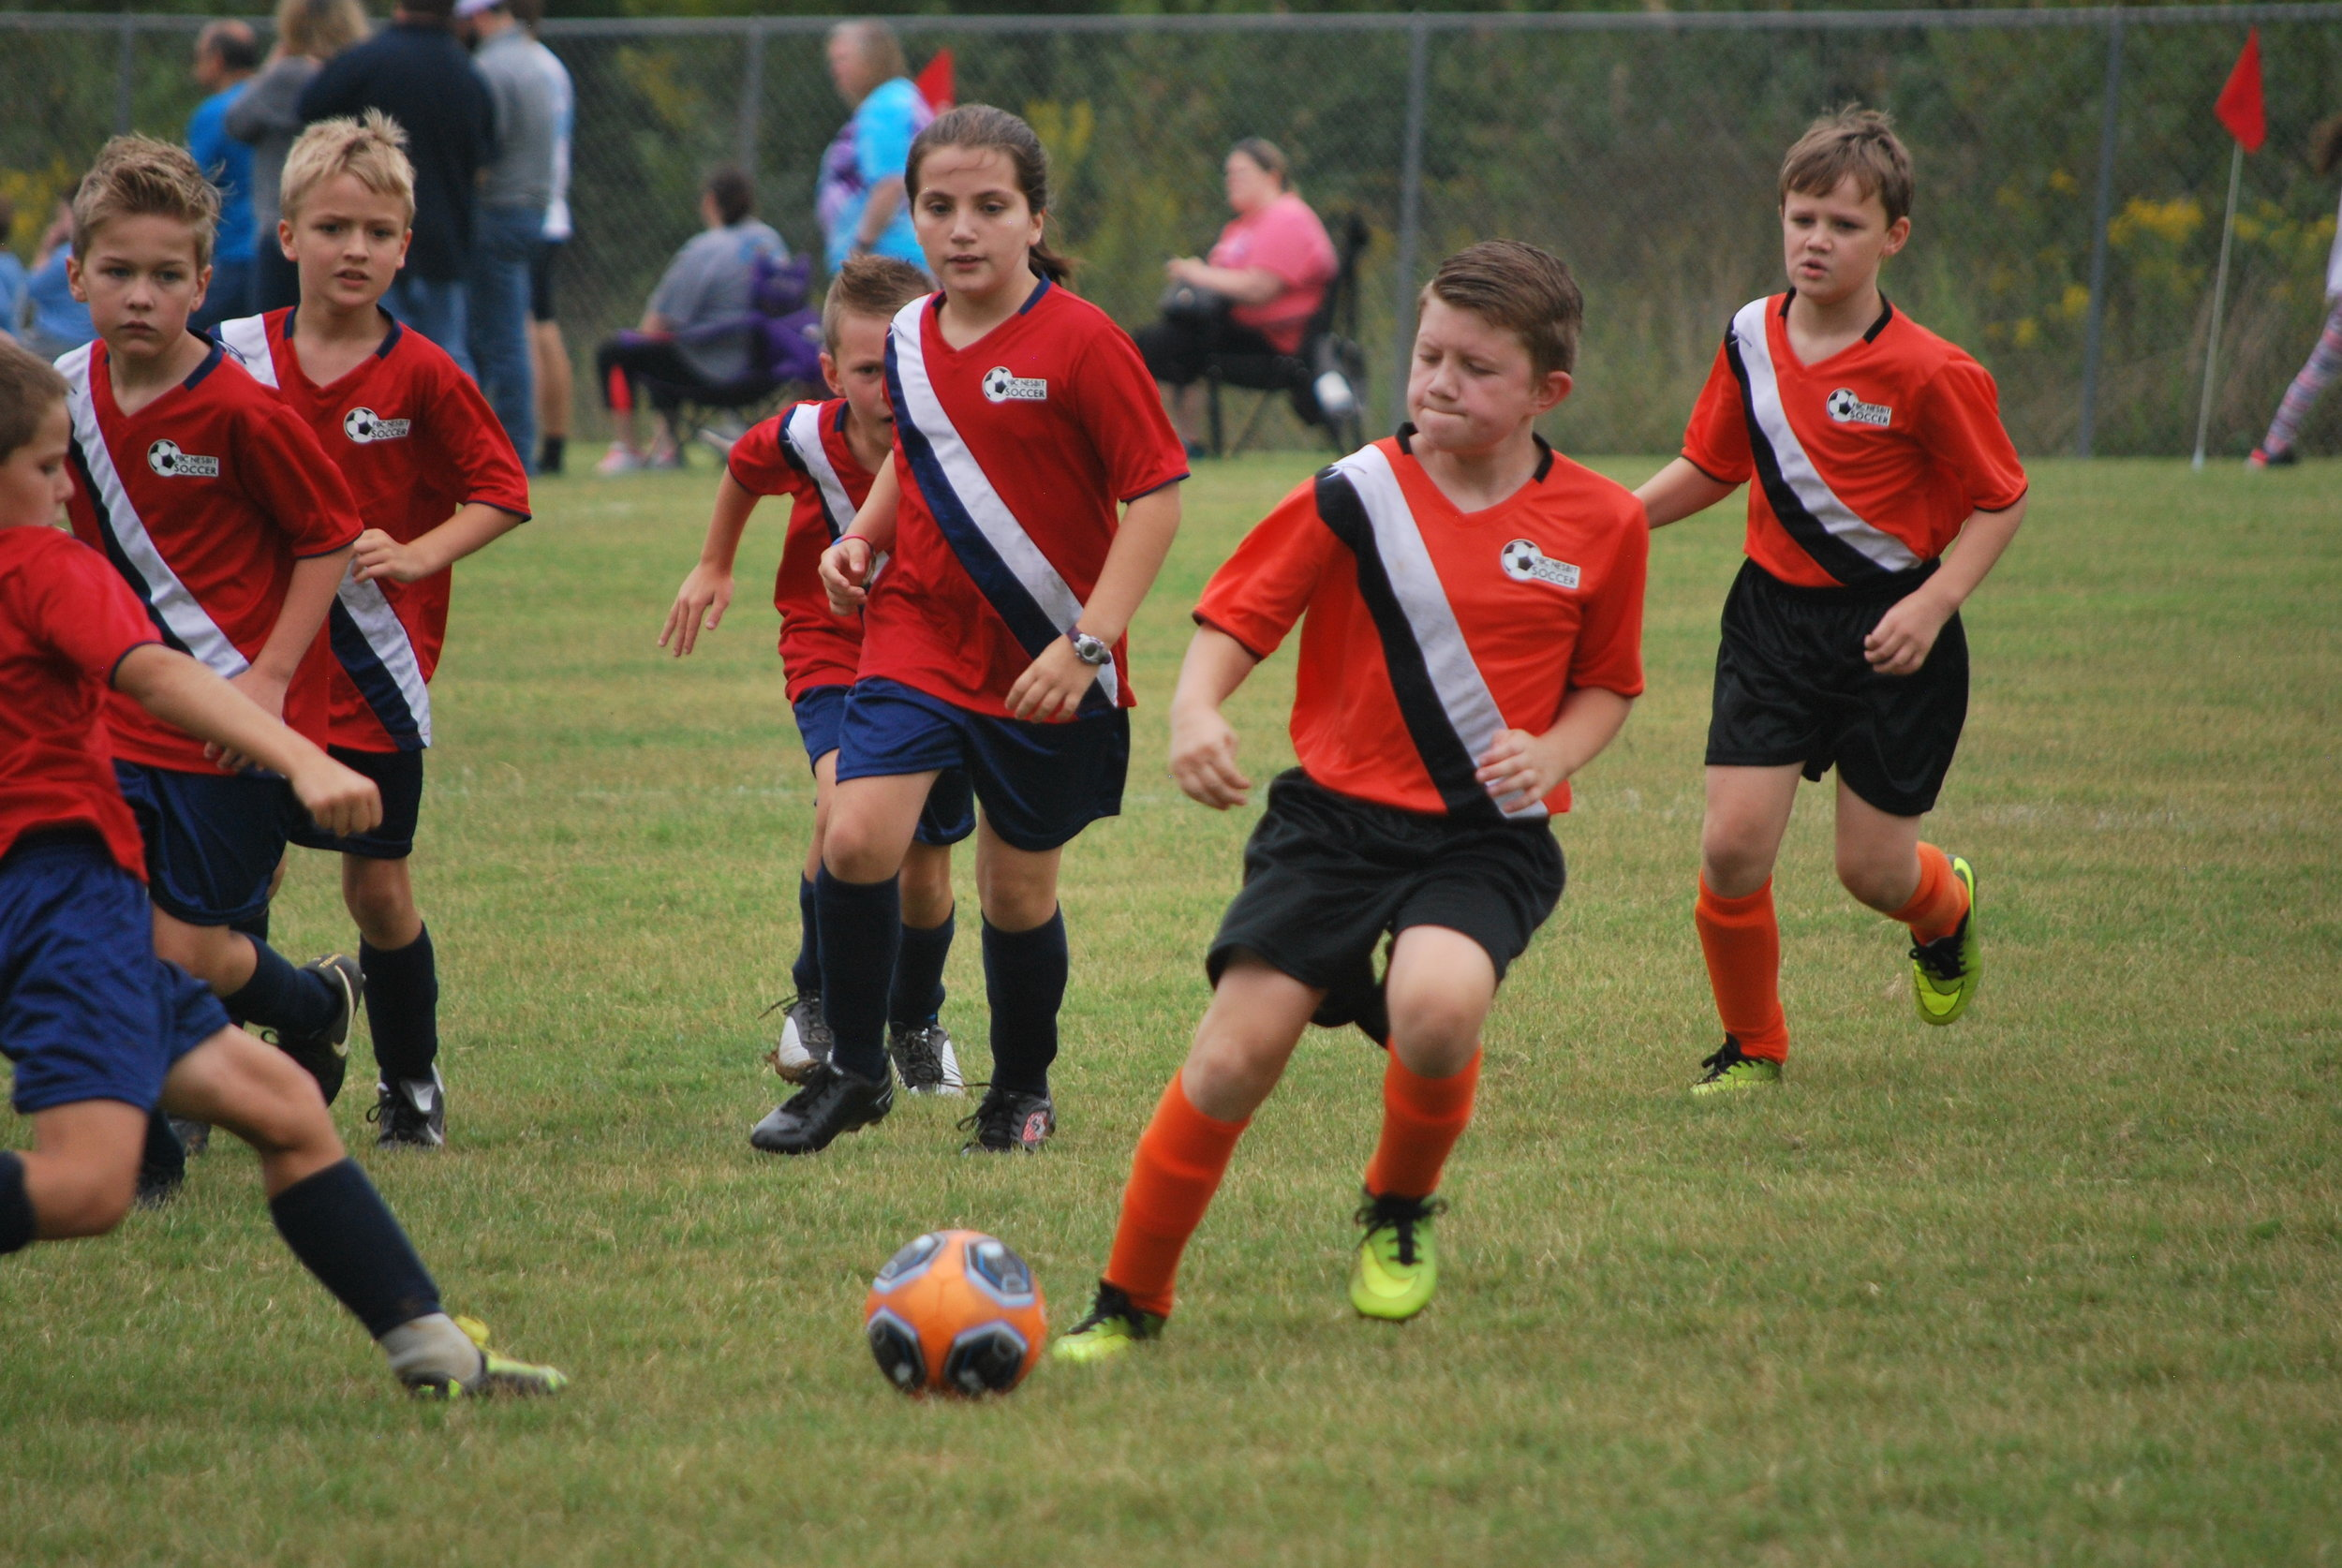 FALL SOCCER 2019 - Fall season will kick off the first weekend of September. We are THRILLED that over 460 kids will be a part of our soccer family this season. For more info on how that ministry looks, click here.PRACTICE SCHEDULES | FALL 2019GAME SCHEDULES | FALL 2019PICTURE SCHEDULE & INFORMATION | FALL 2019